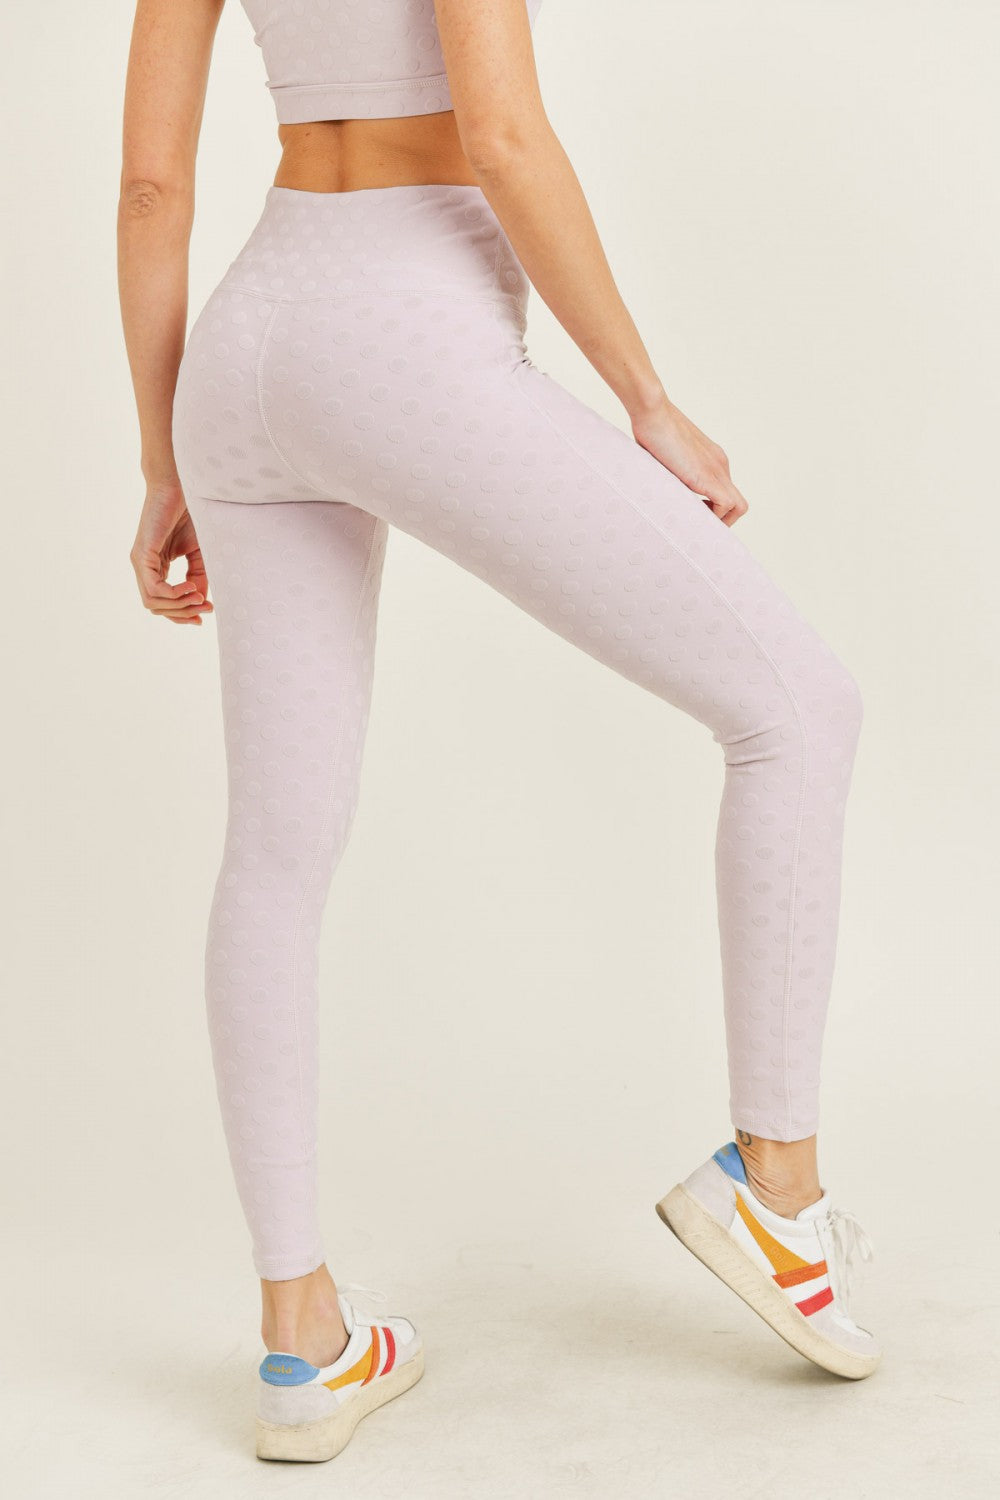 Polkadot Highwaist Leggings- Light Pink